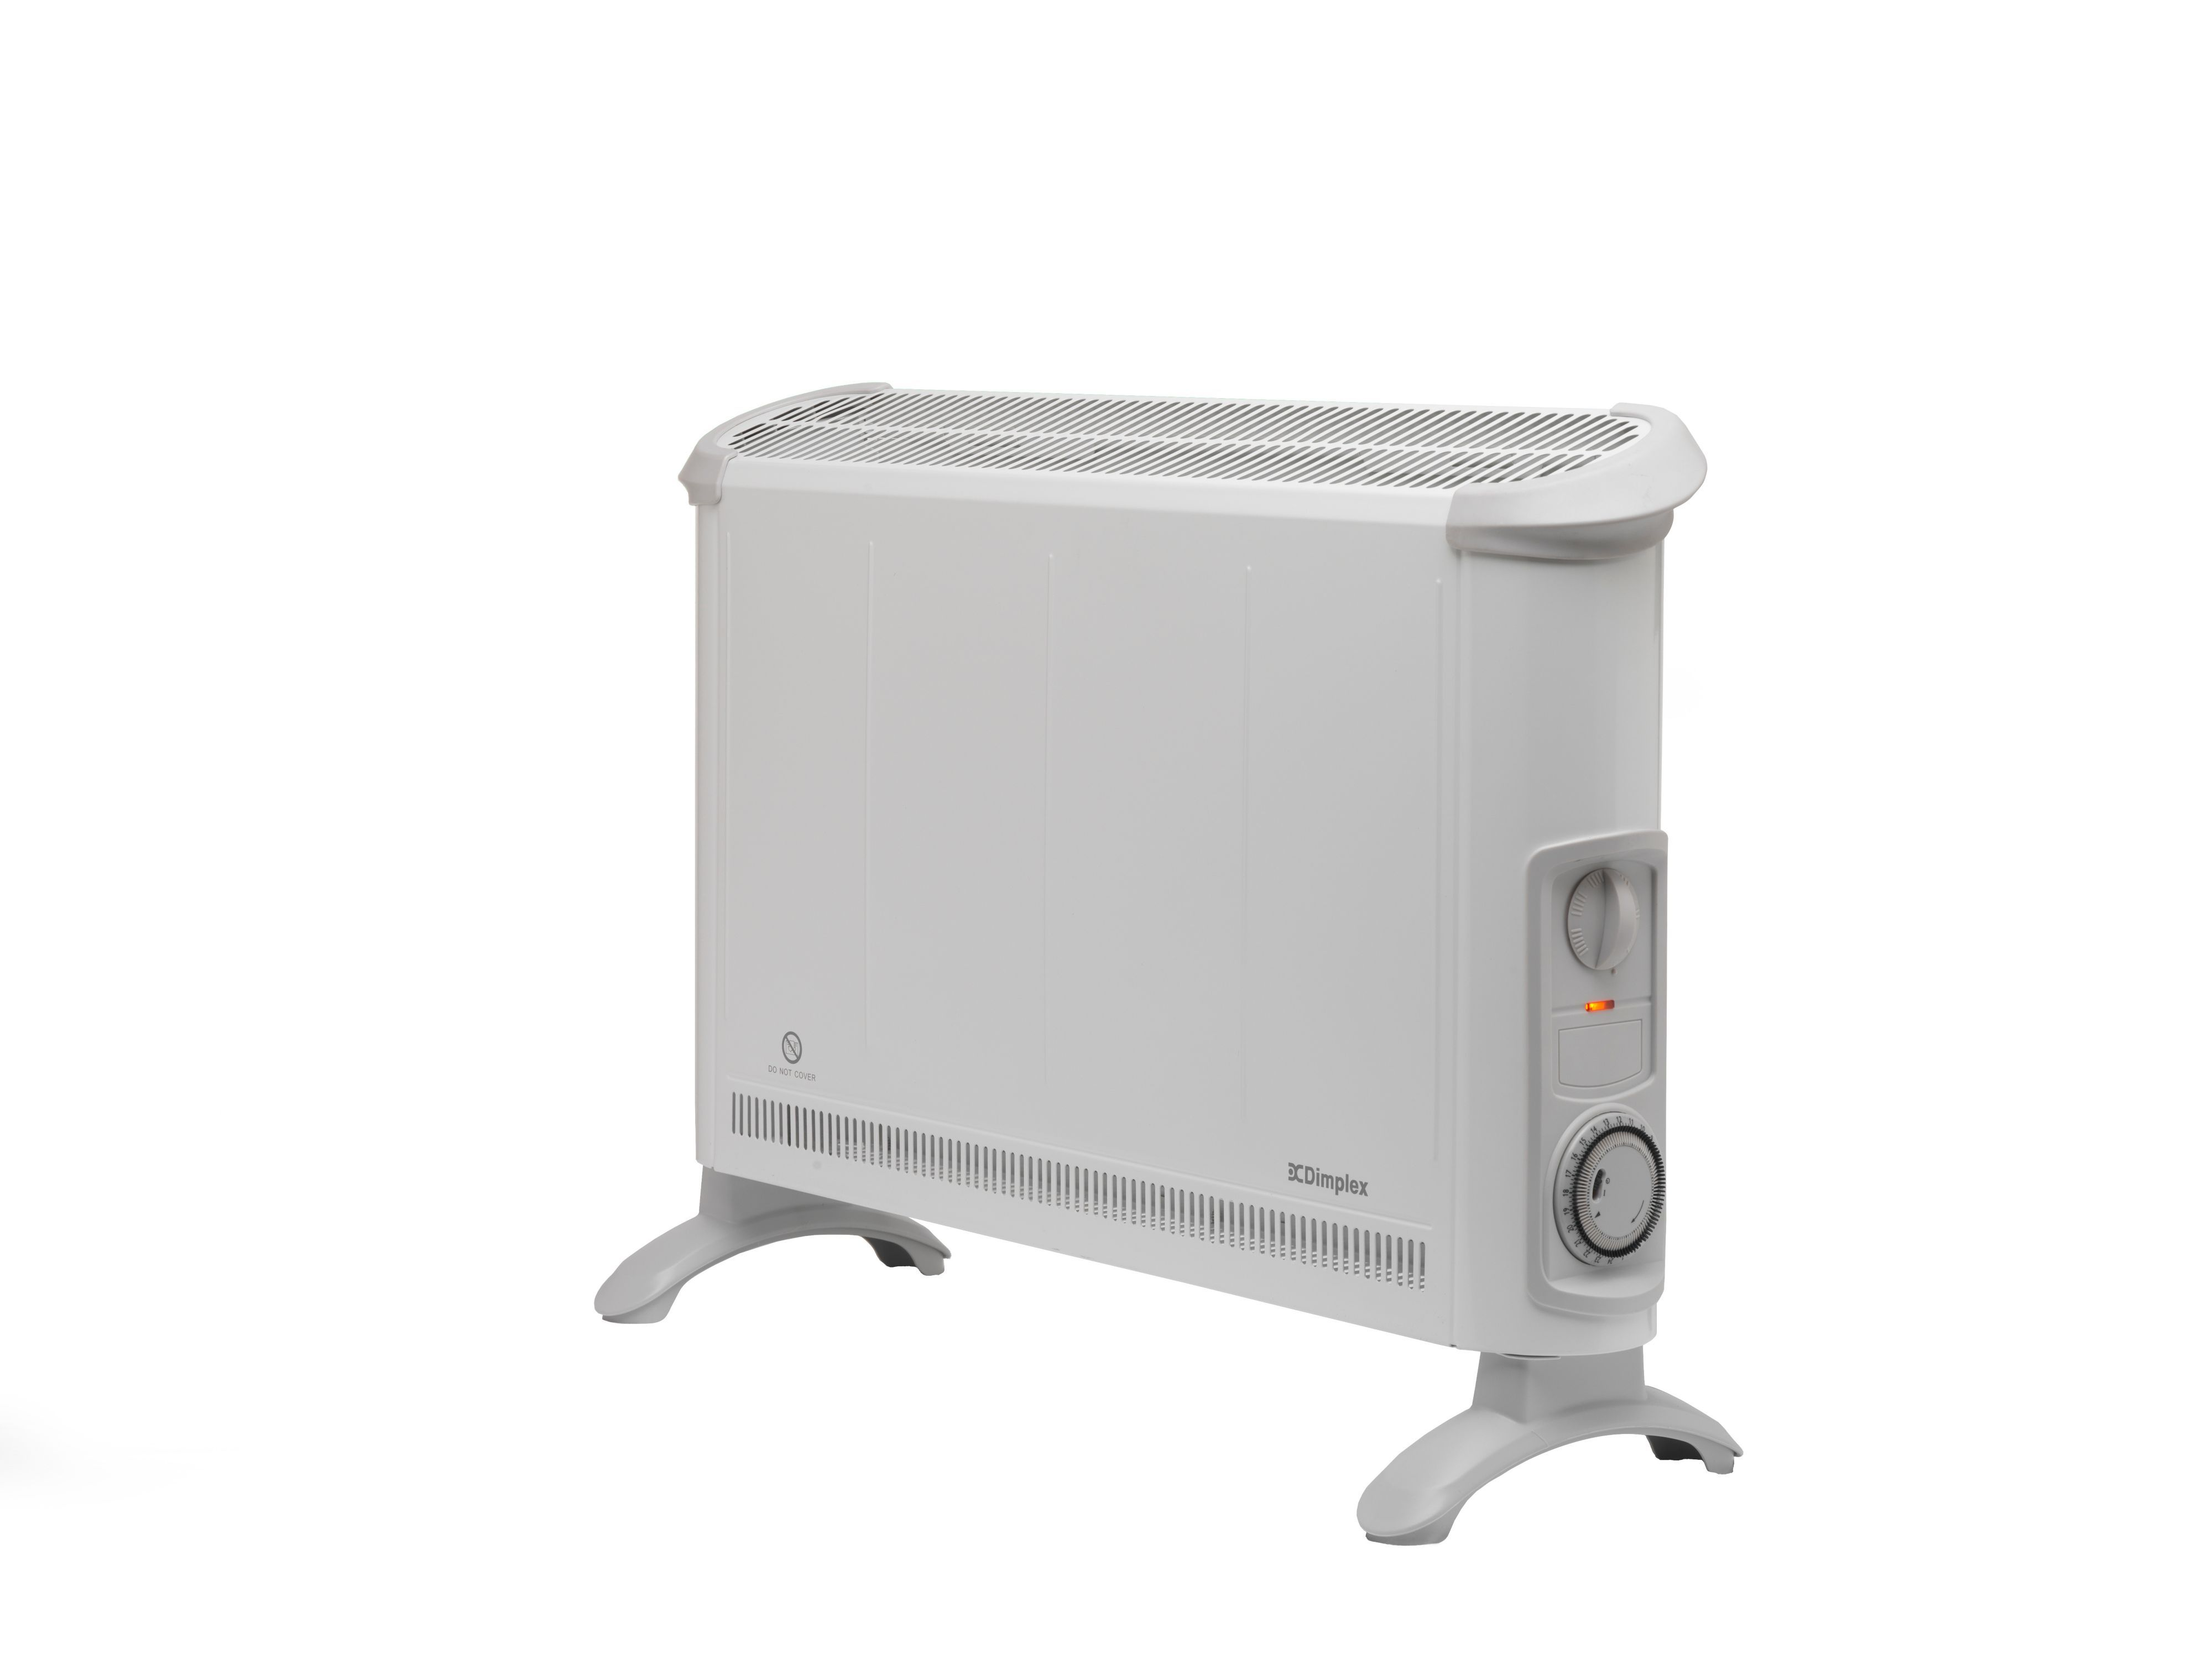 bathtub ip style electric milkhouse com heater walmart space utility portable